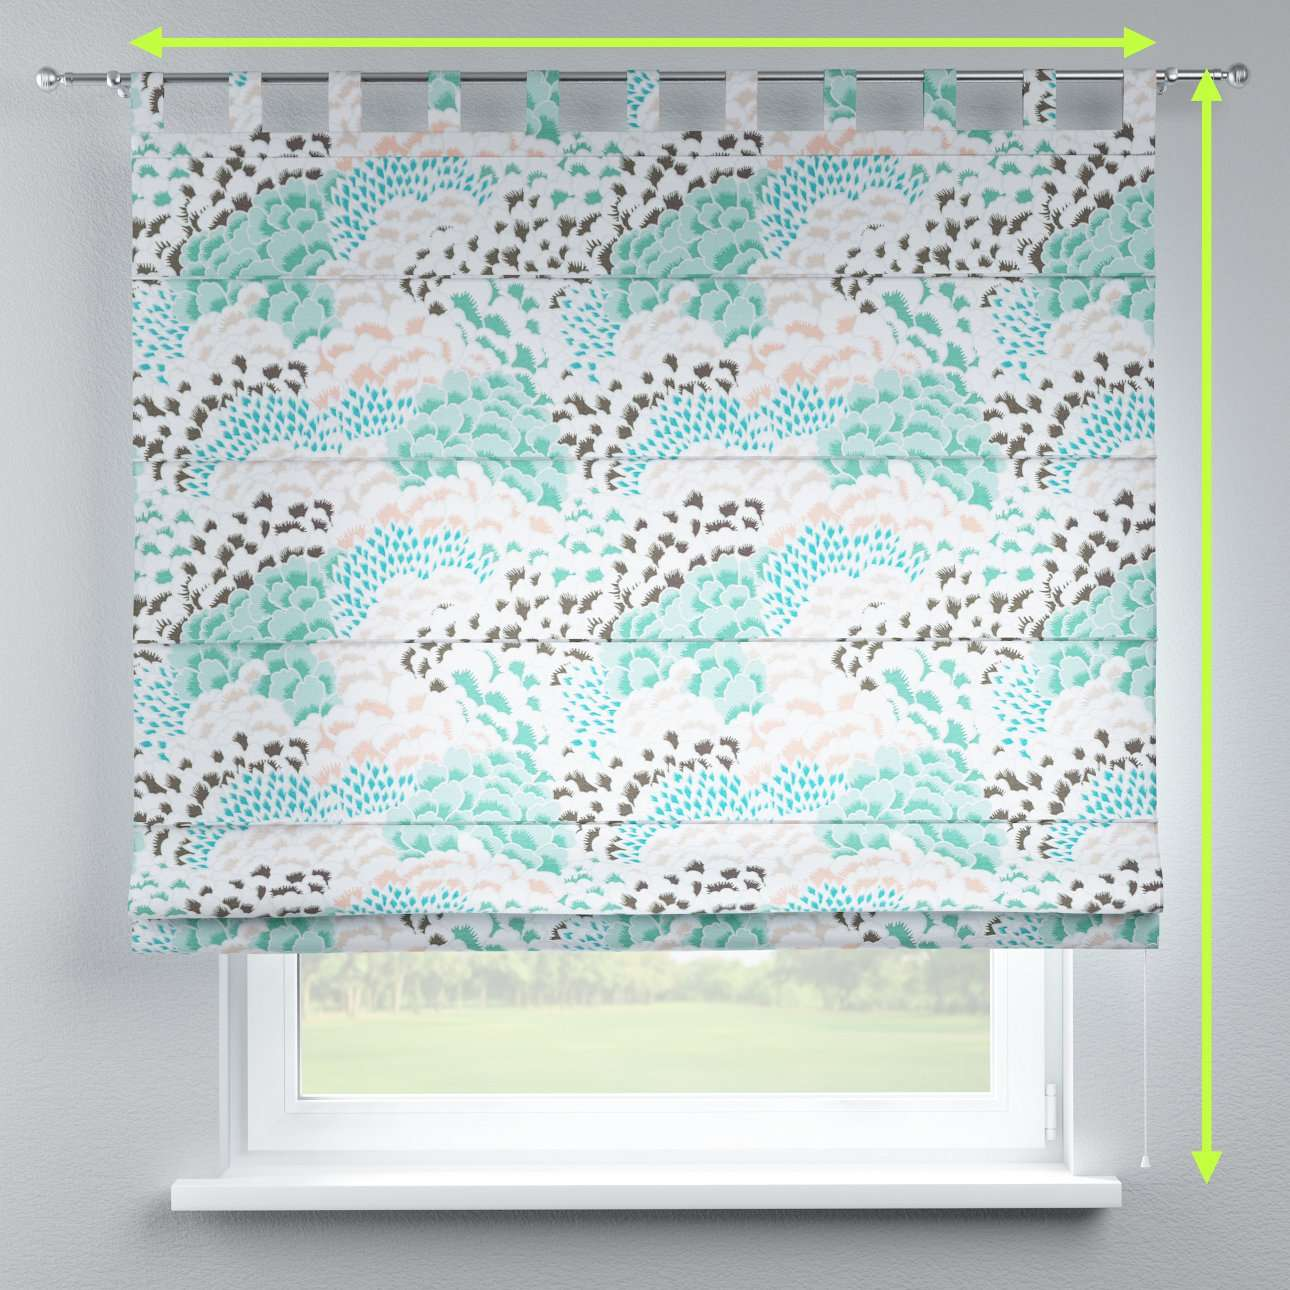 Verona tab top roman blind in collection Brooklyn, fabric: 137-89